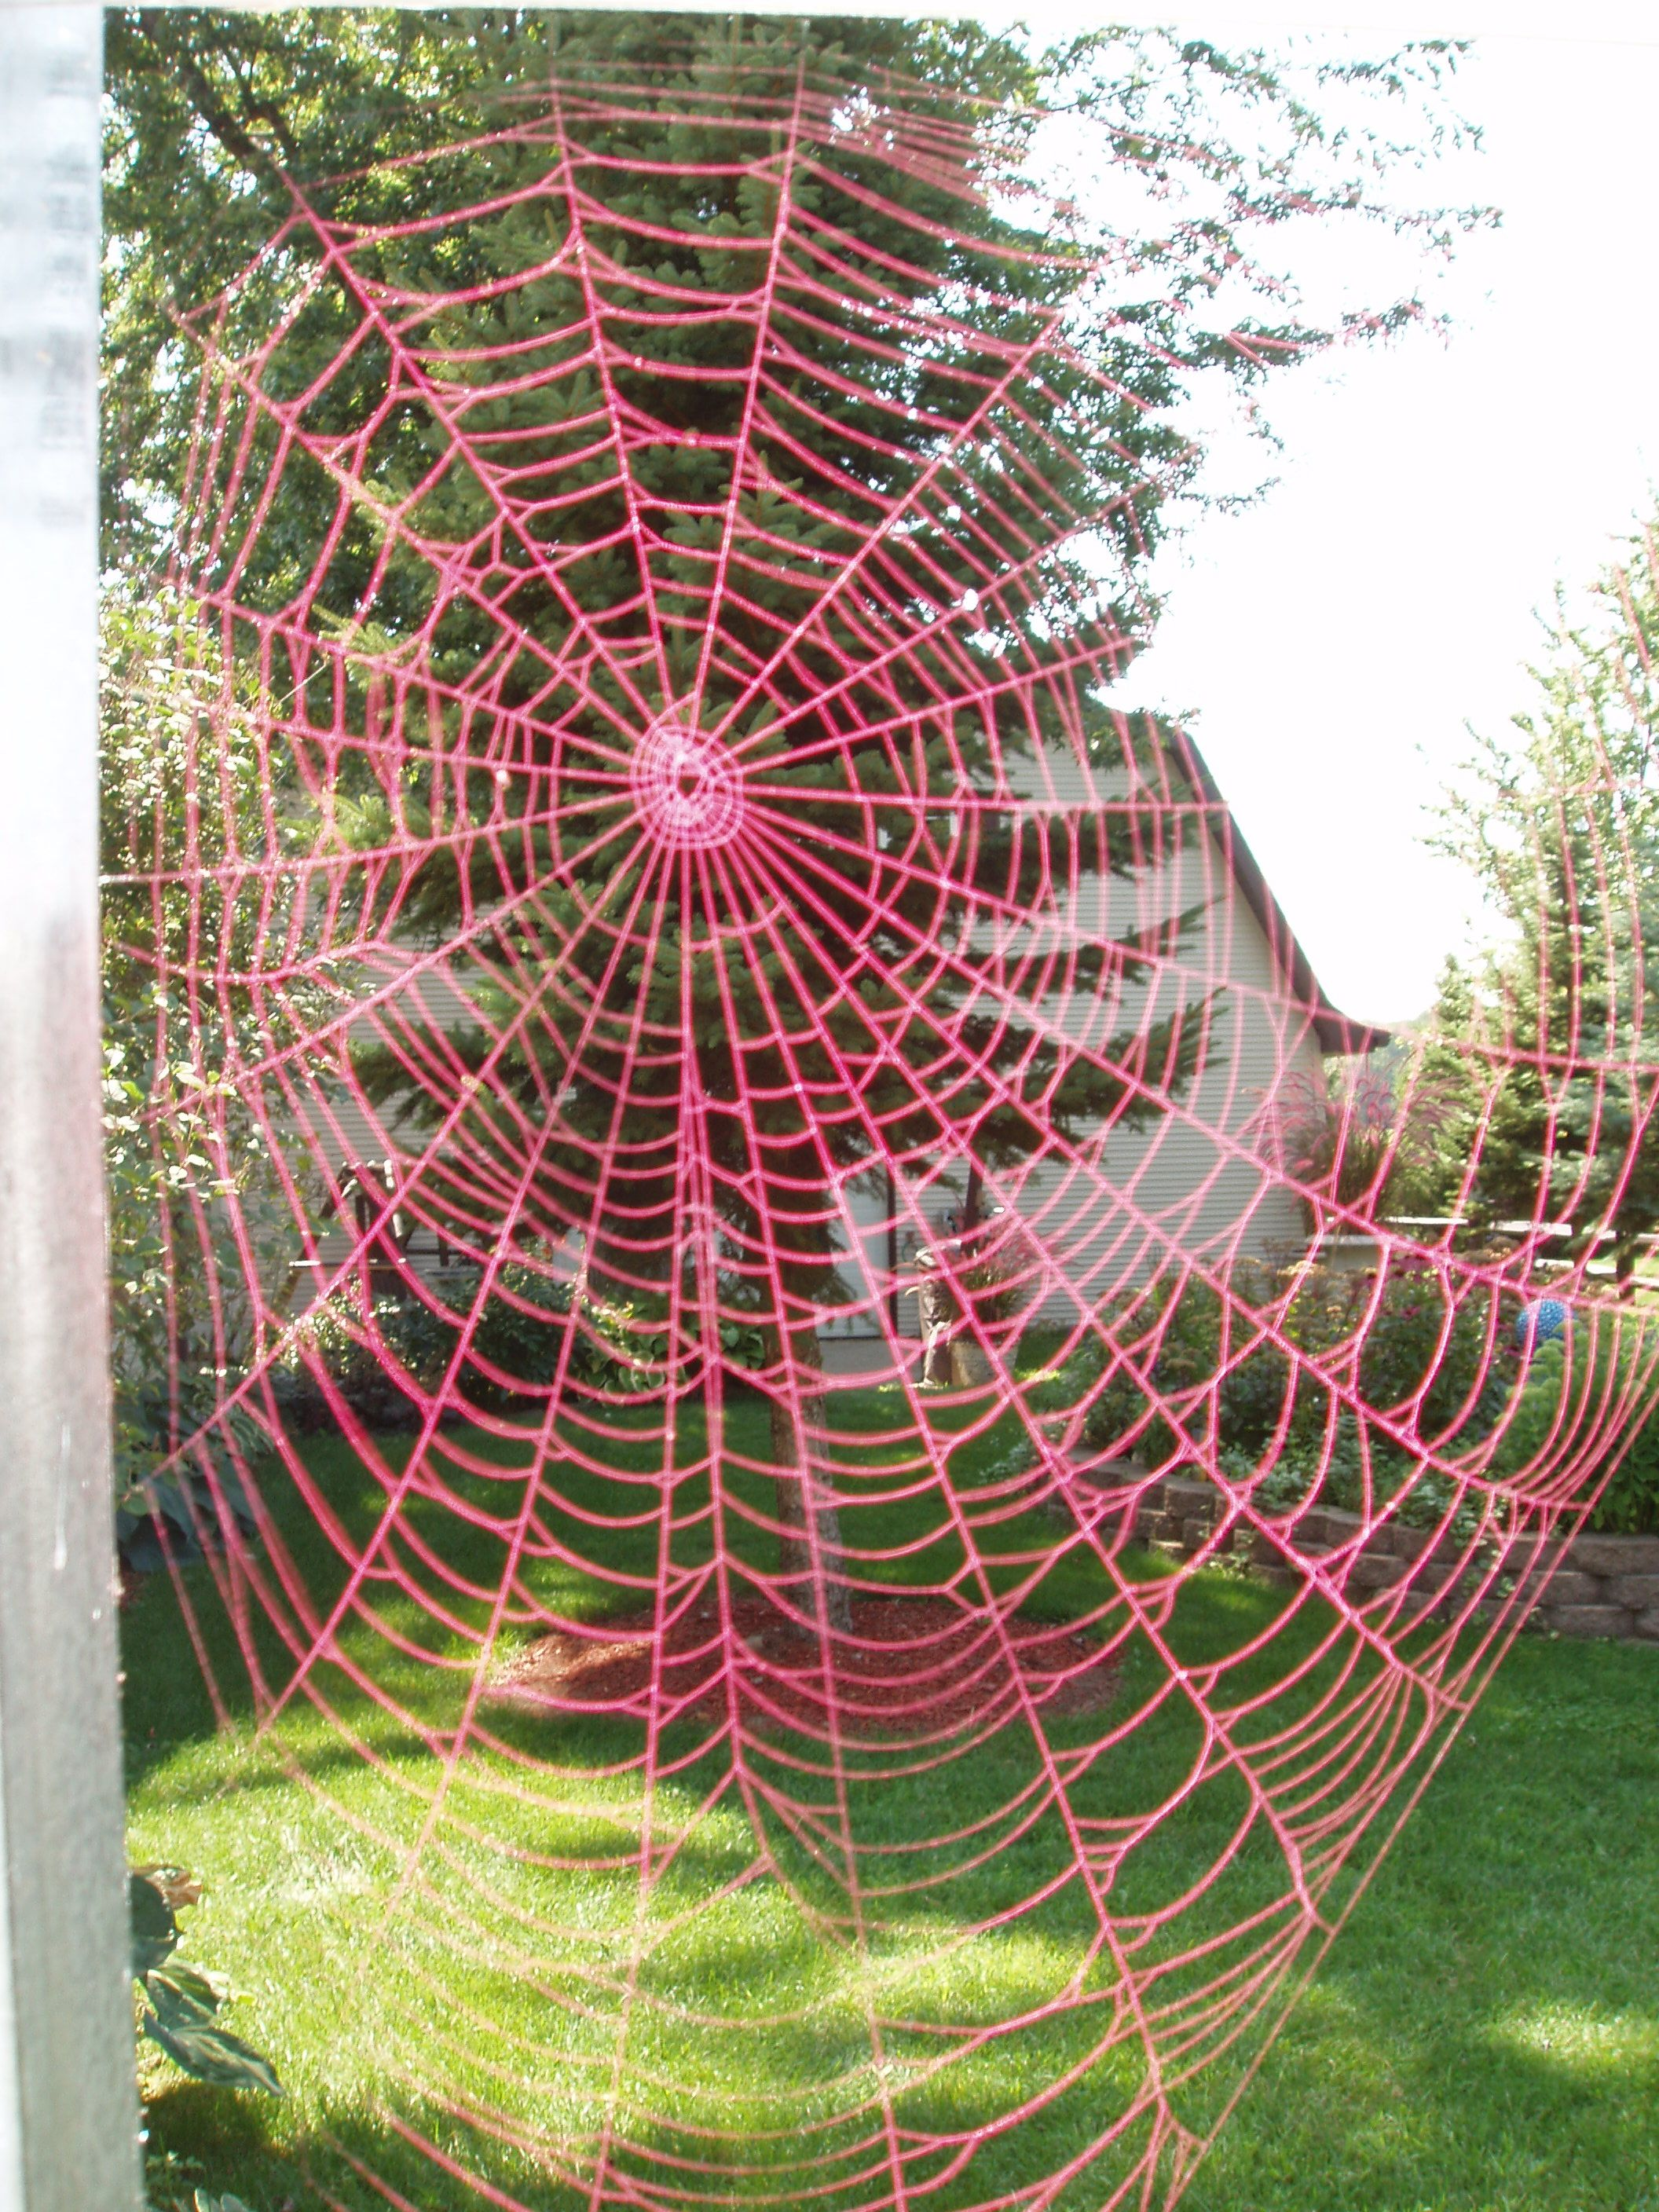 Spray Painted A Spider Web With Bright Paint Spiders